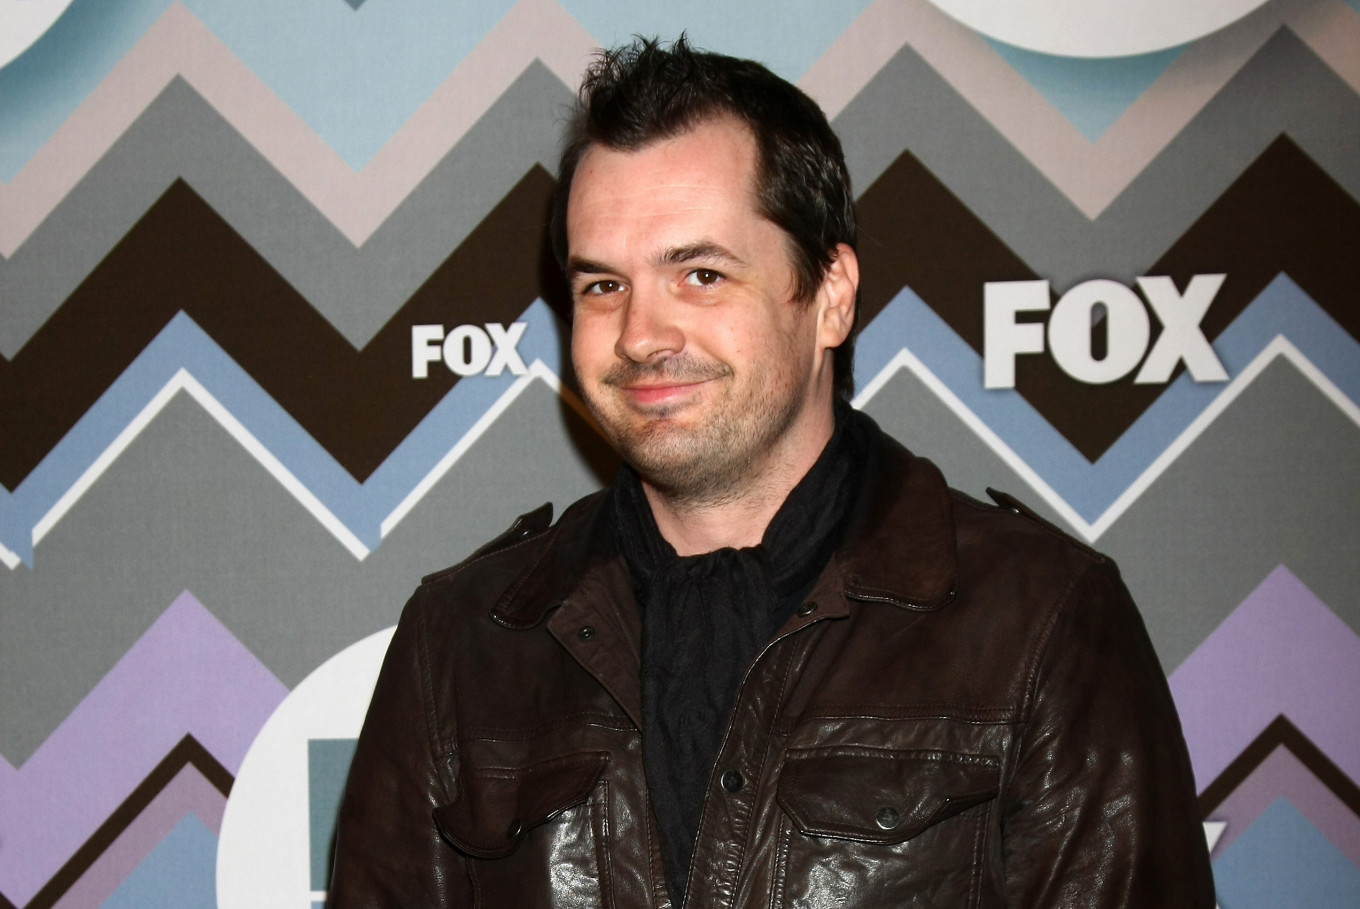 Standup comedian Jim Jefferies to perform in Jakarta, Bali